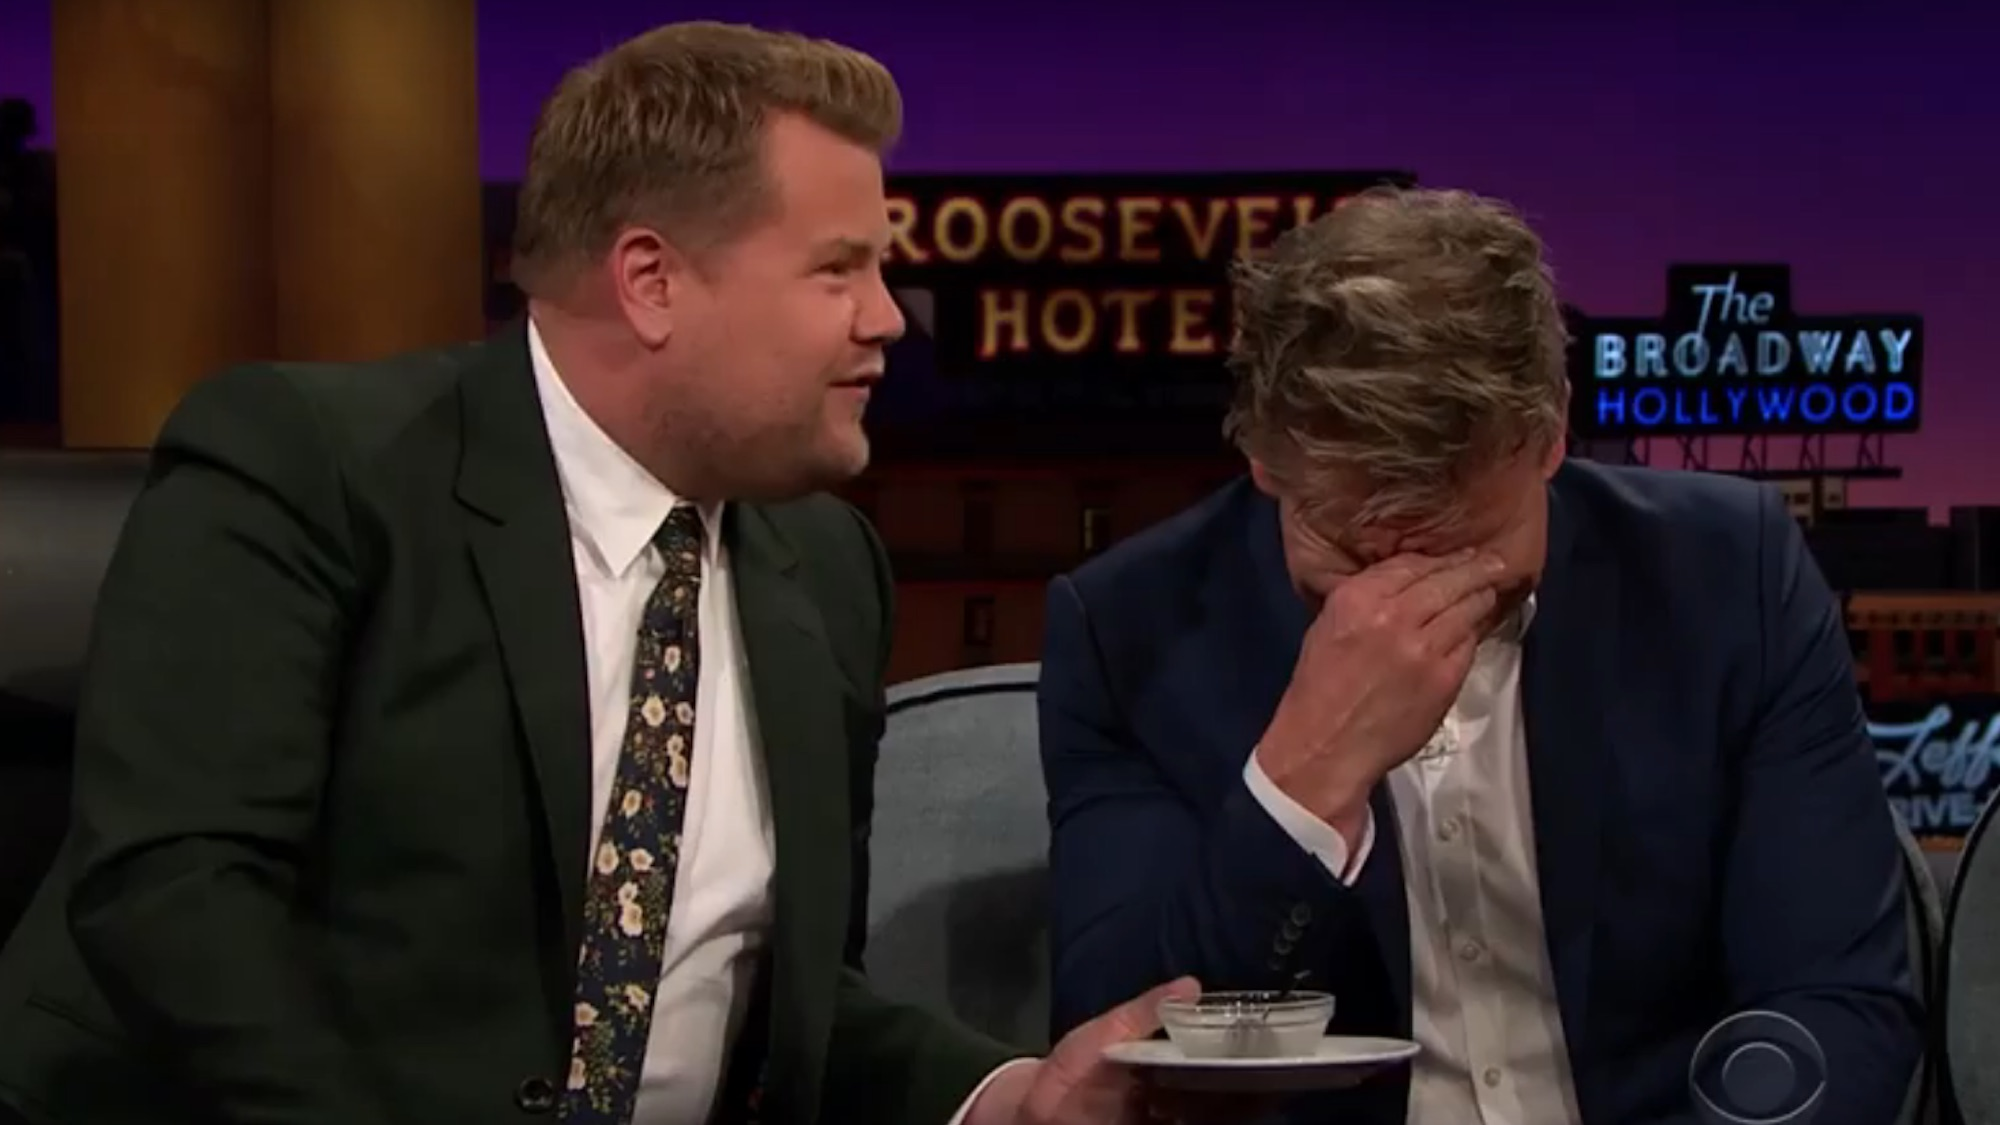 WATCH: James Corden Finally Gets His Revenge on Gordon Ramsay ...